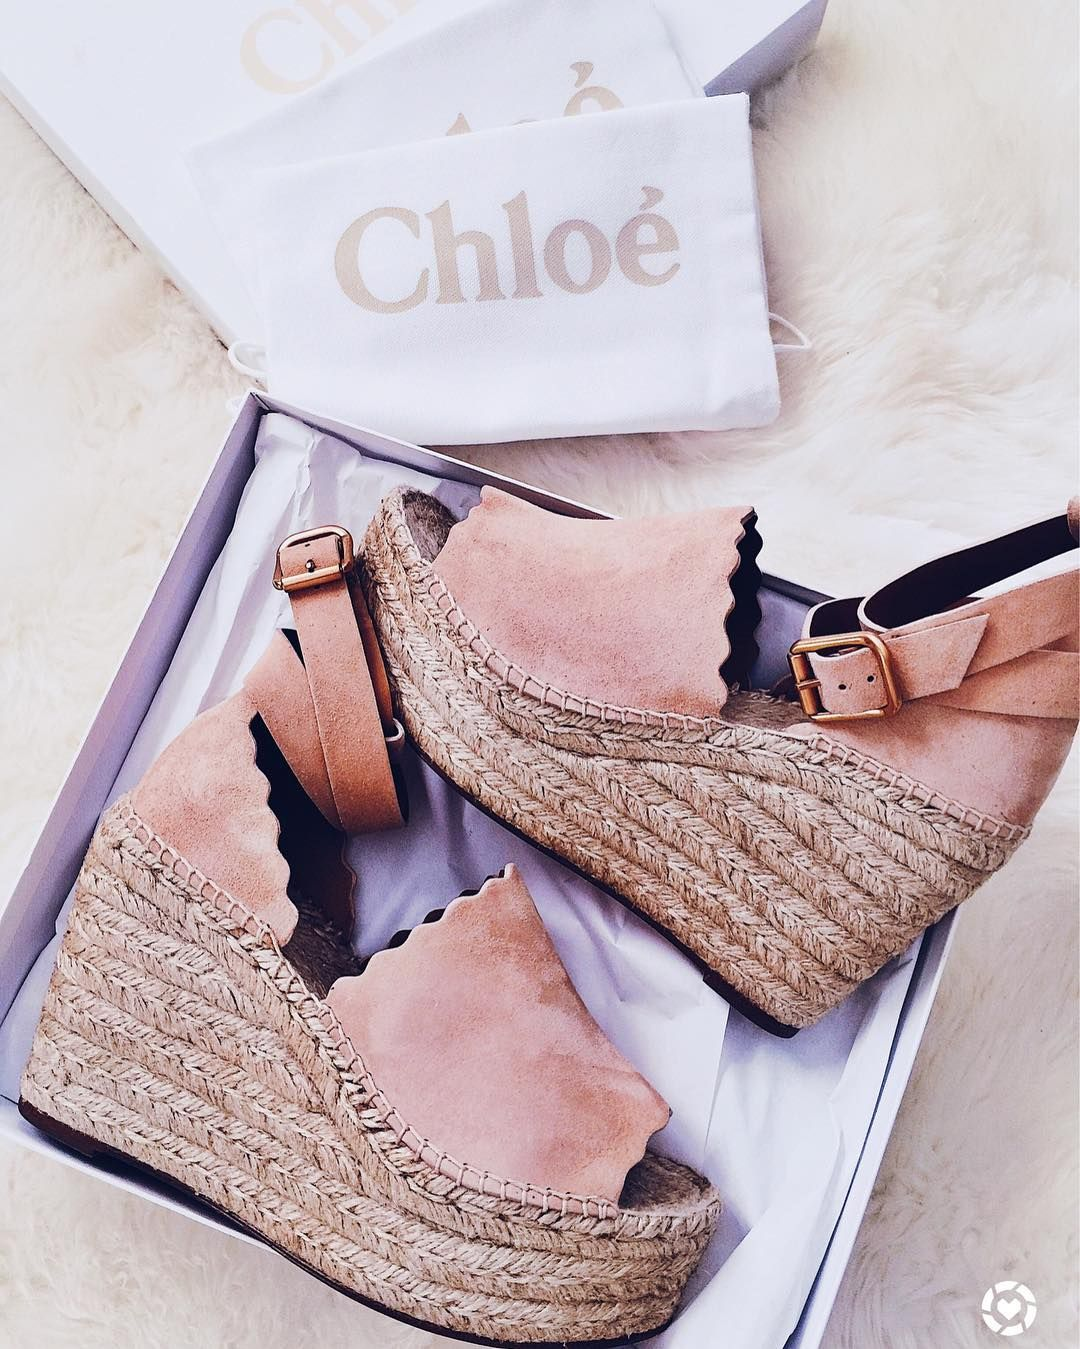 442c83529eb3 New shoes and I m obsessed. There s also a few identical pairs of  espadrilles